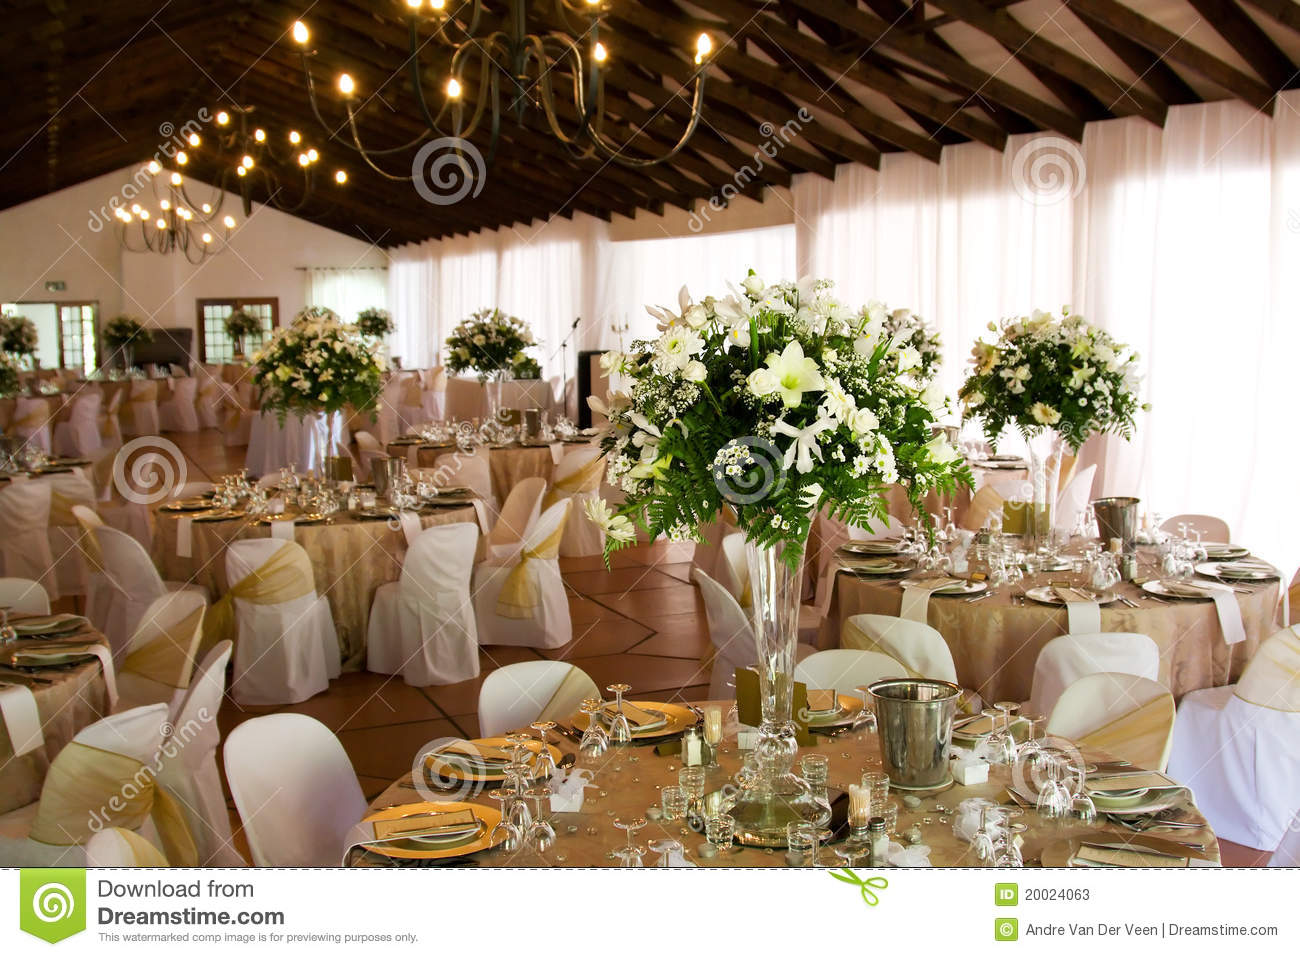 wedding receptions decorating flowers